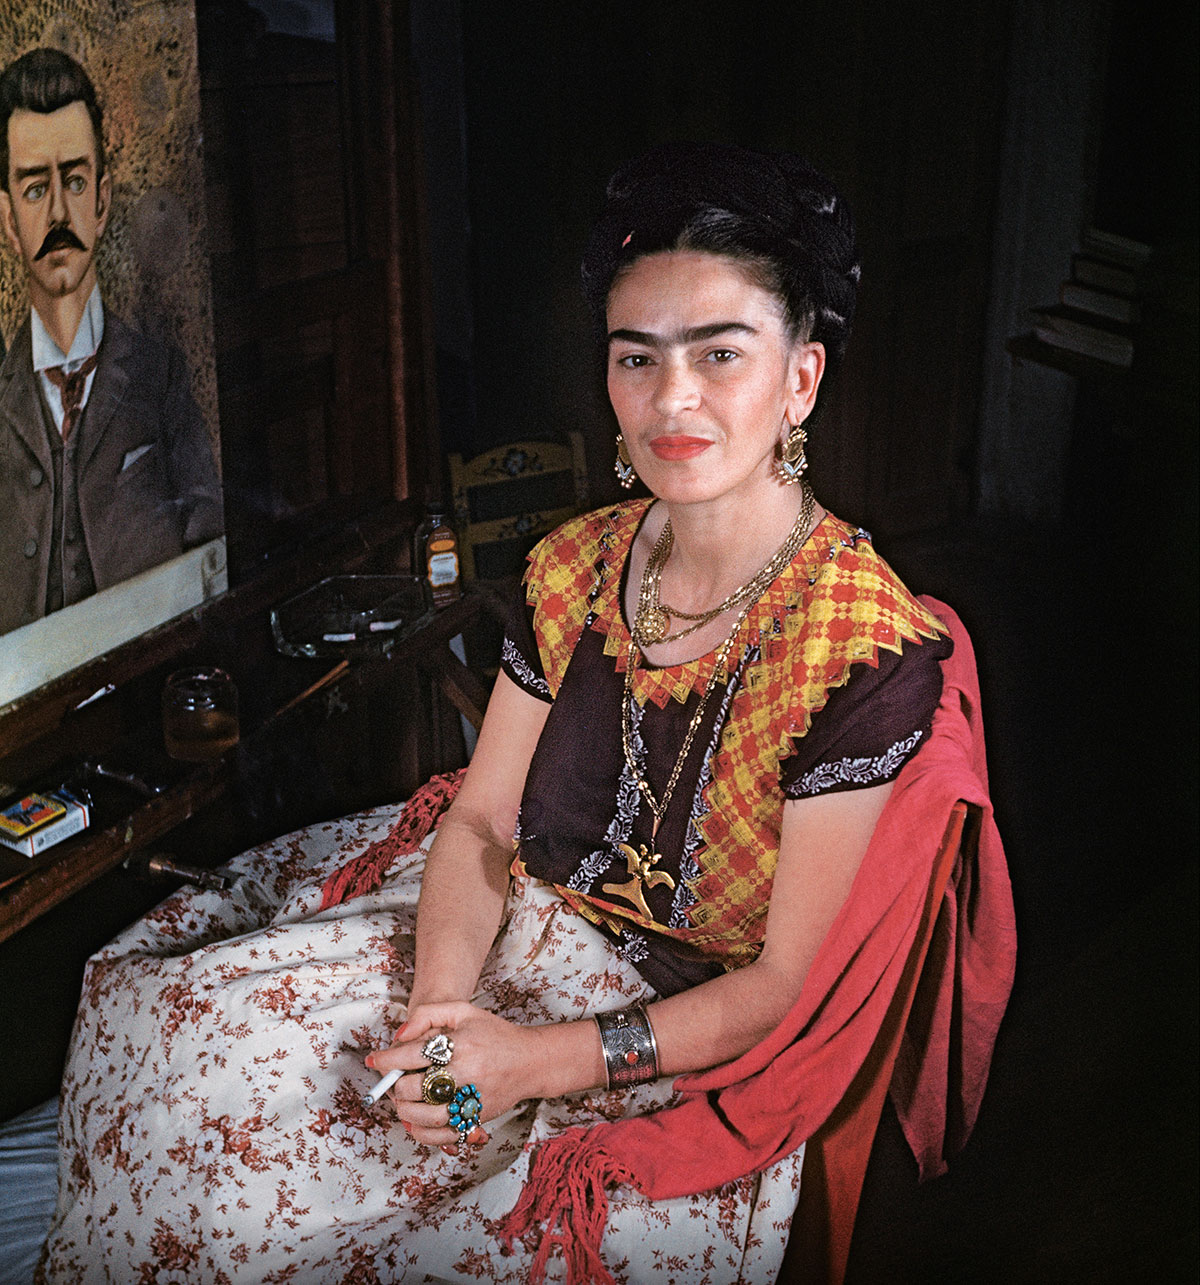 frida kahlo in casa azul_2